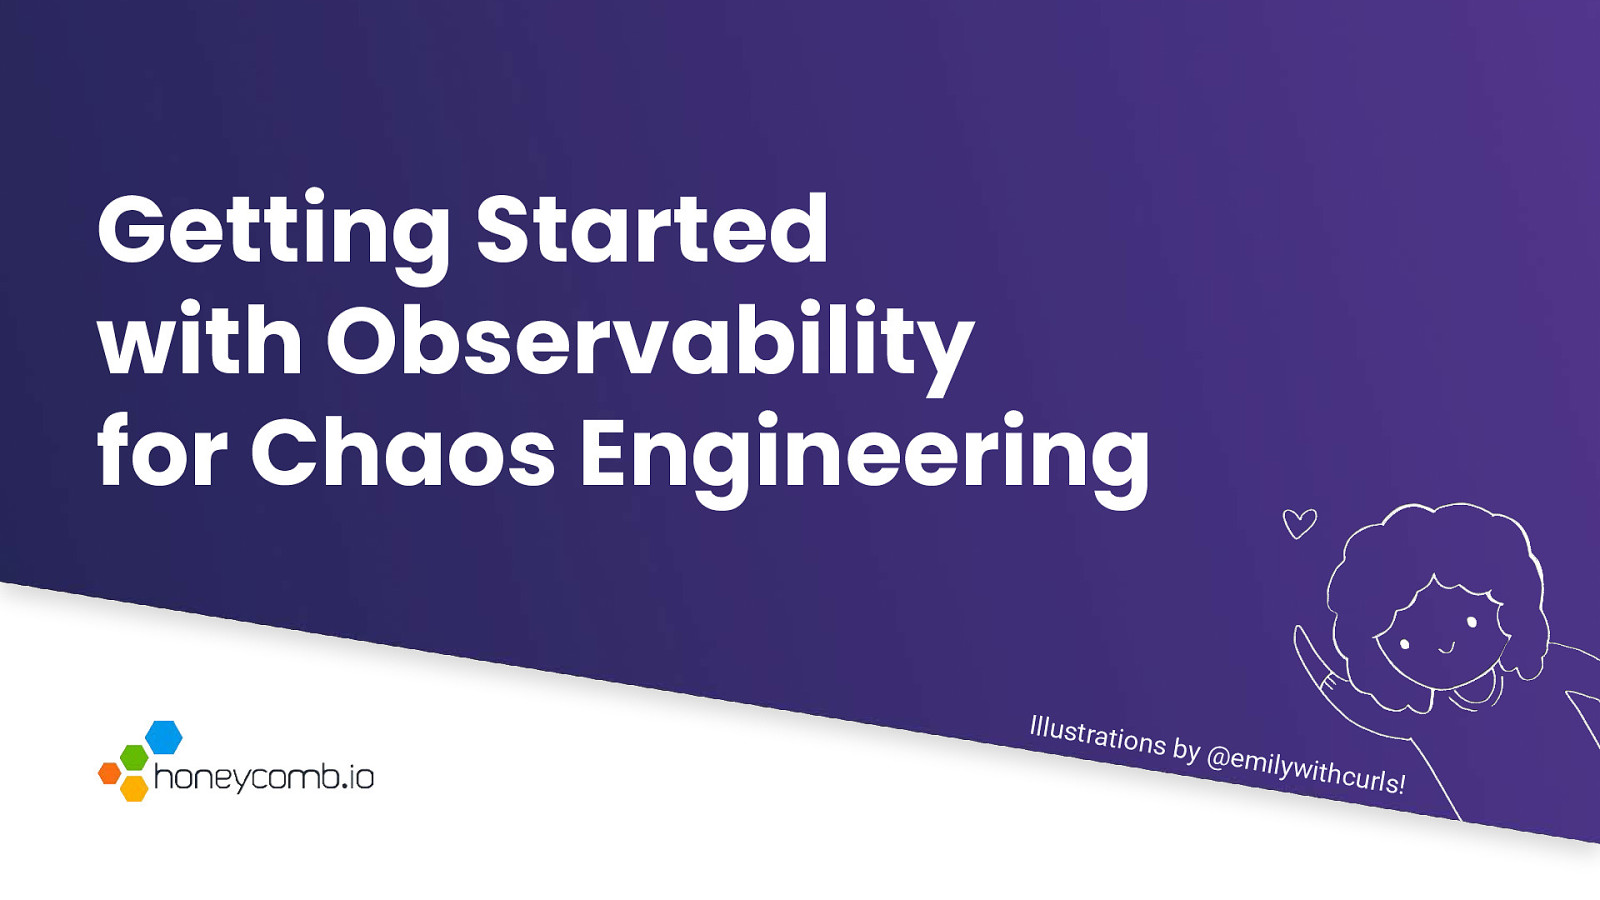 Getting Started with Observability for Chaos Engineering